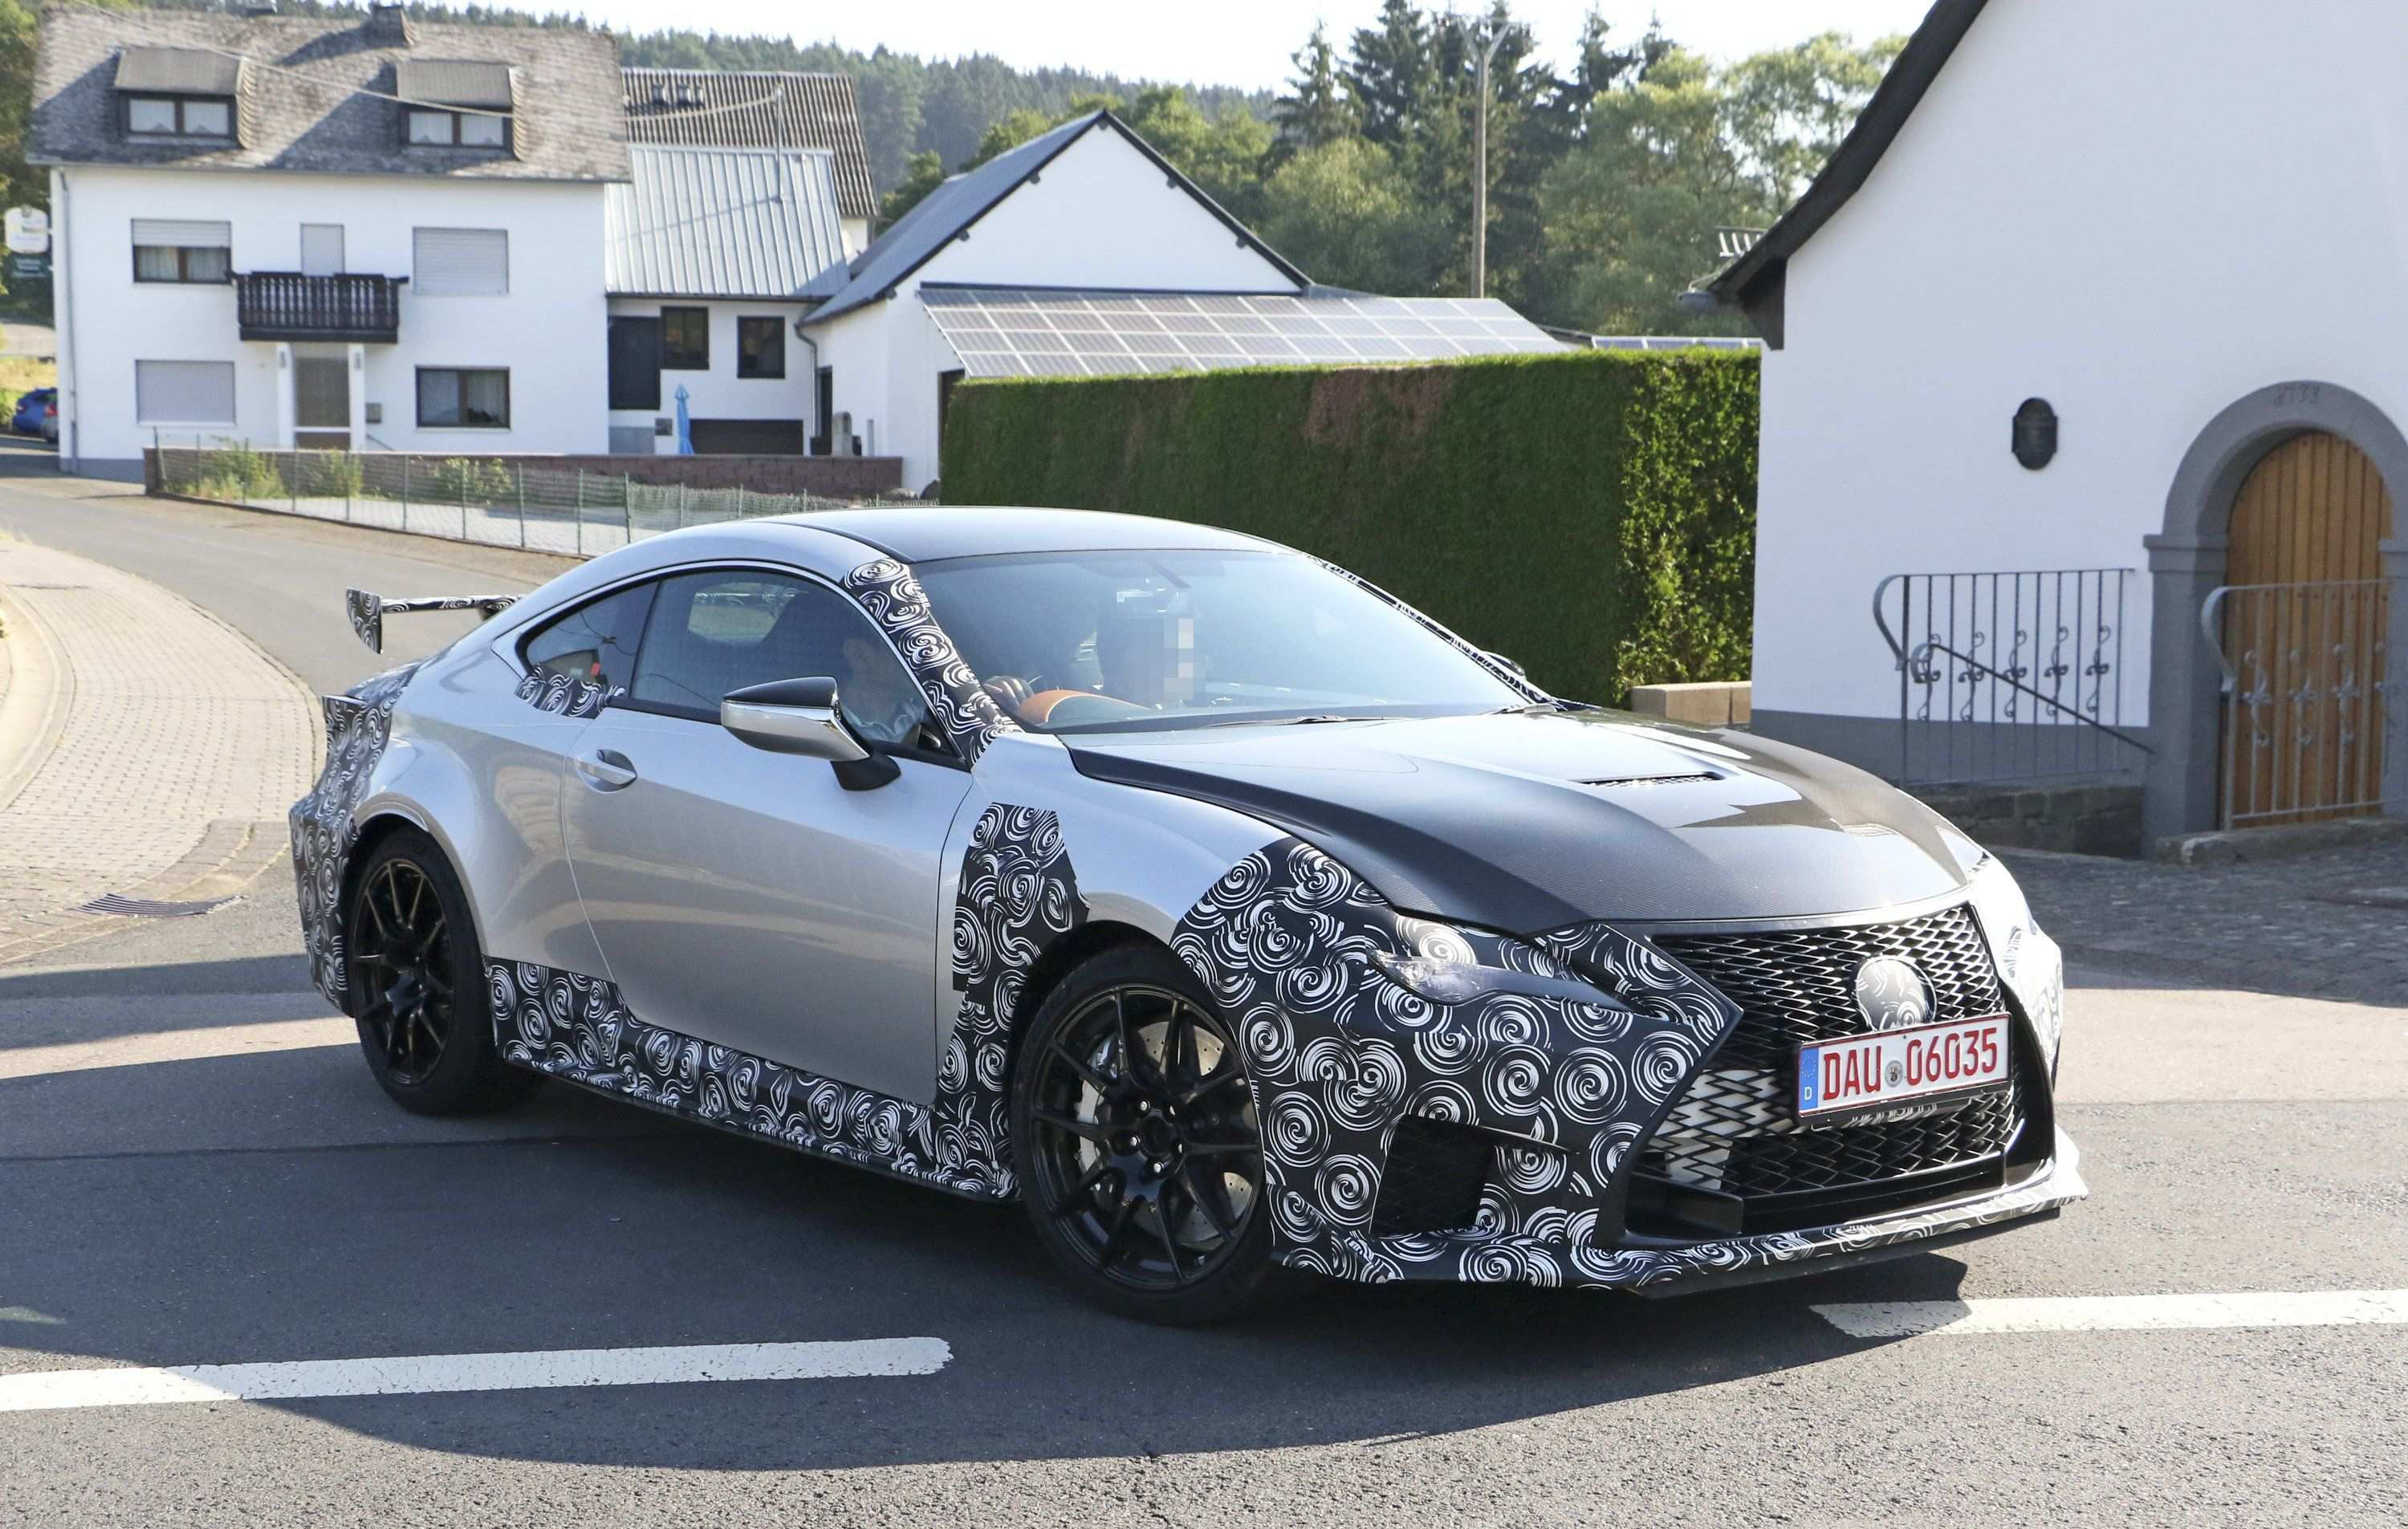 38 Concept of 2020 Lexus Isf Ratings for 2020 Lexus Isf